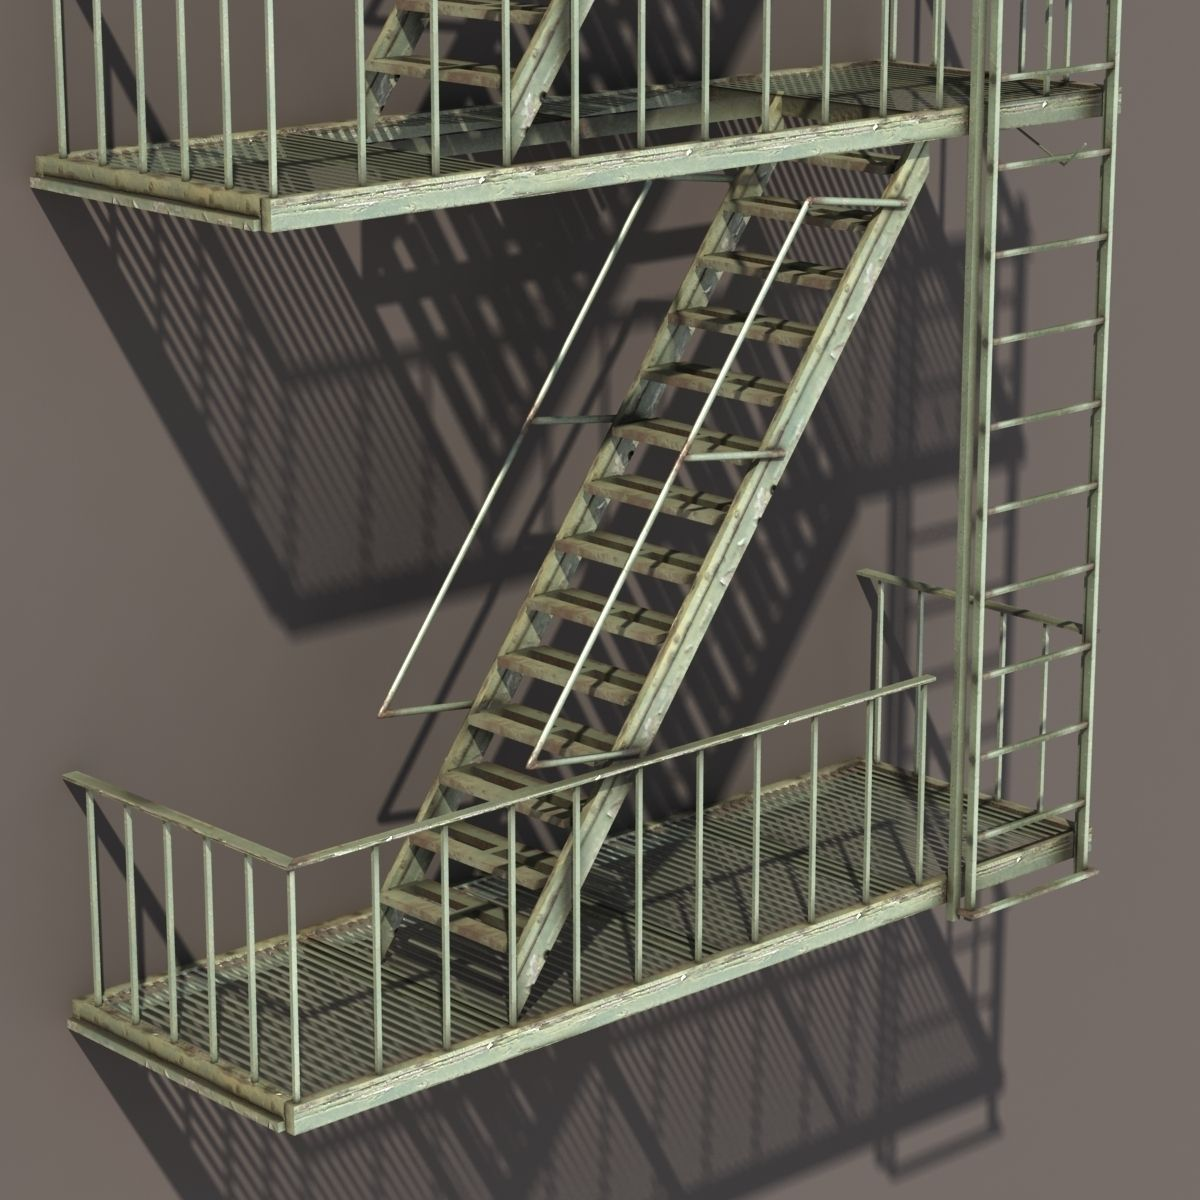 Fire Escape Stairs Low Poly 3d Model Cgtrader